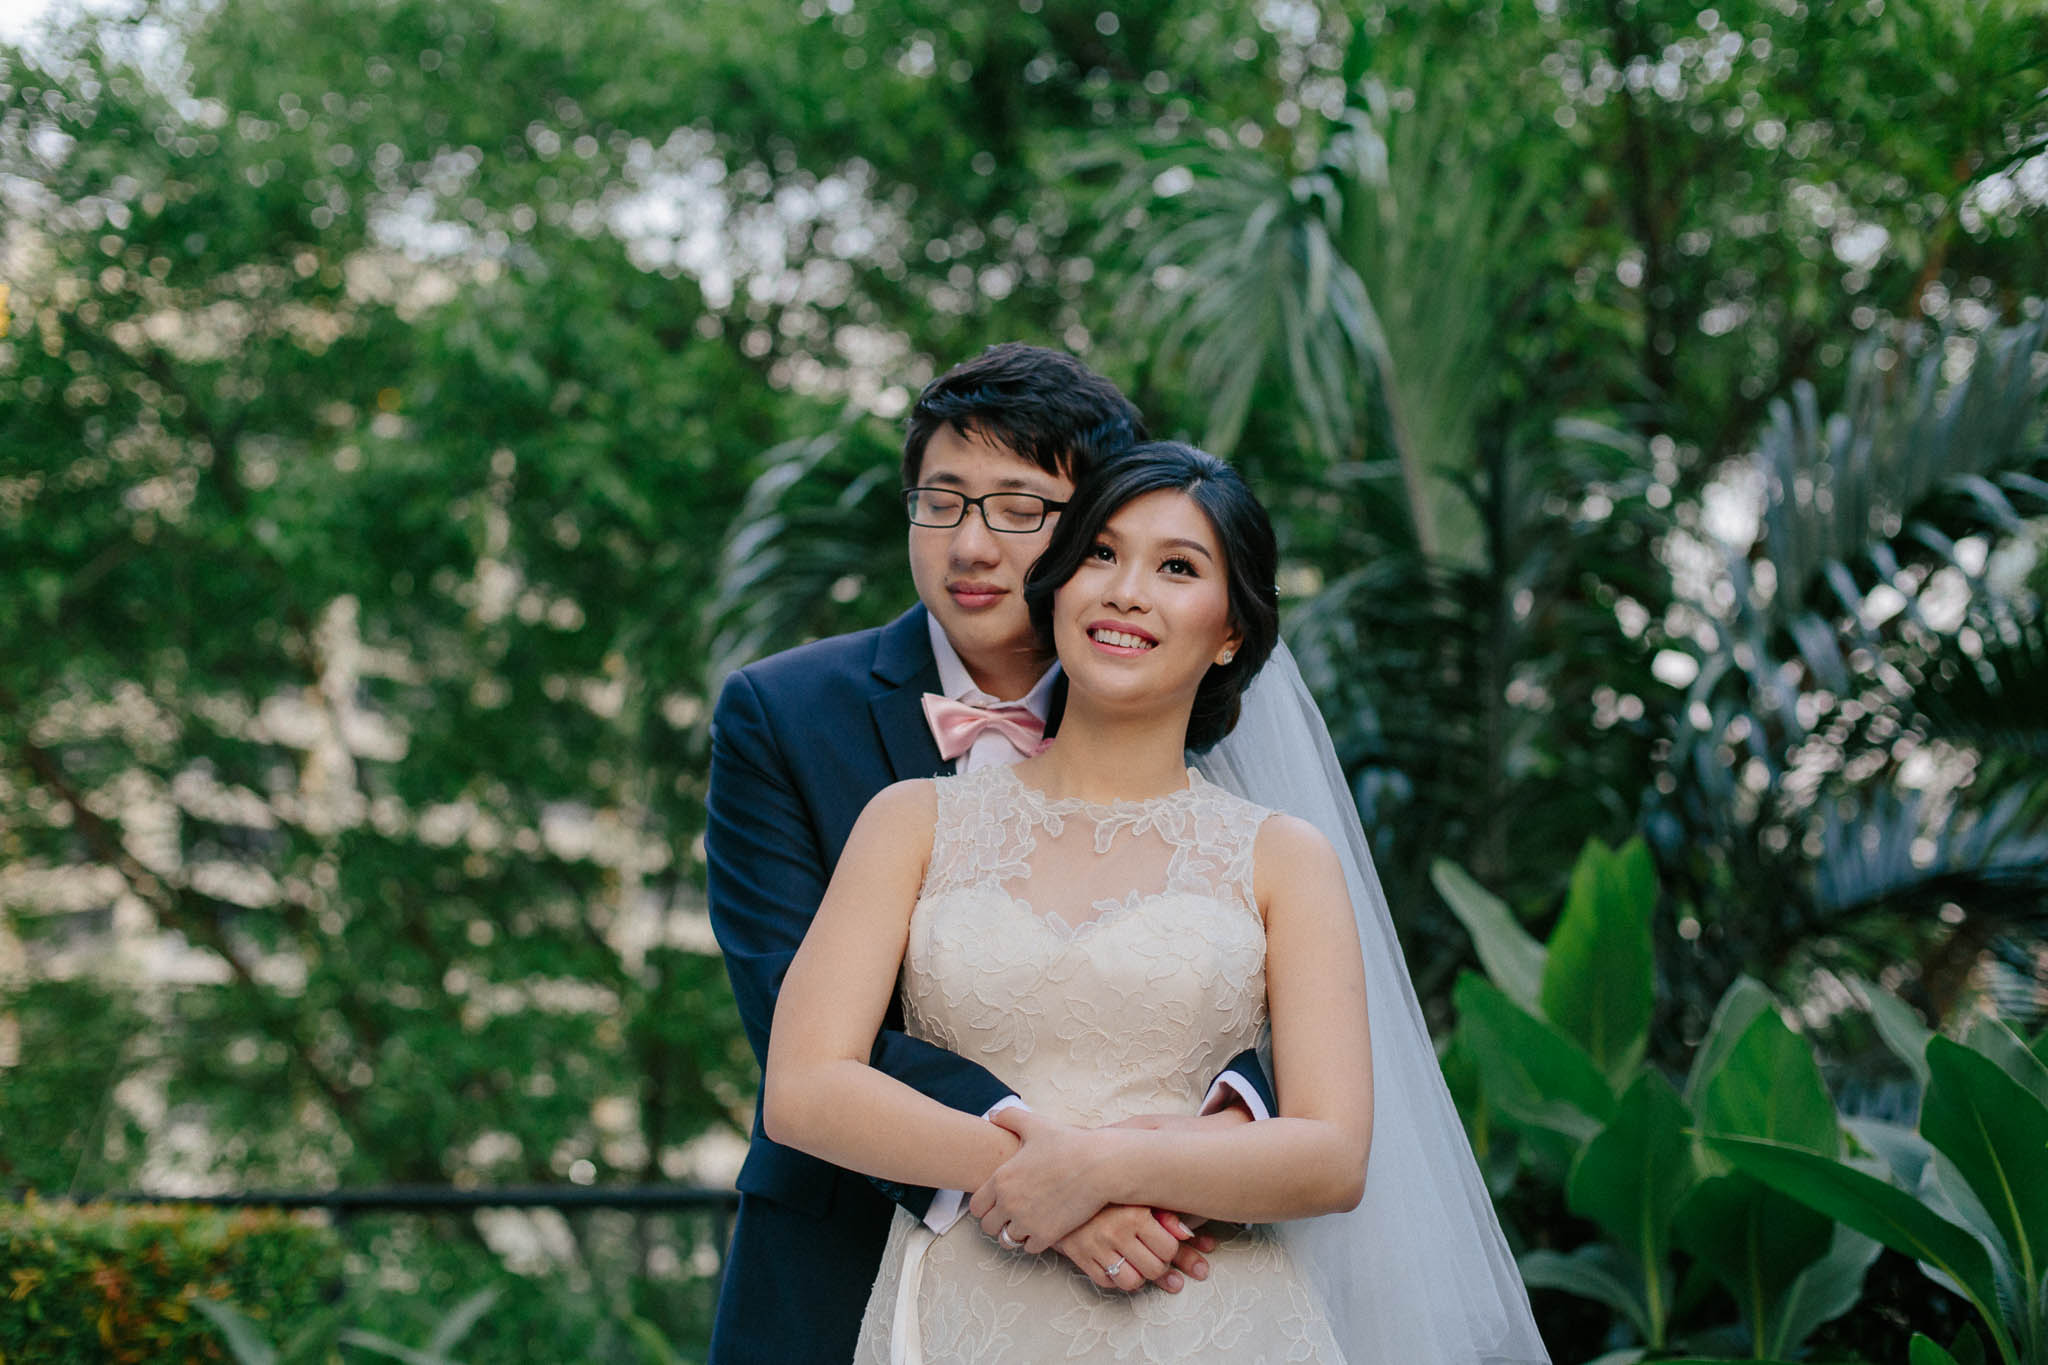 singapore-wedding-photographer-pre-wedding-ashley-sean-044.jpg